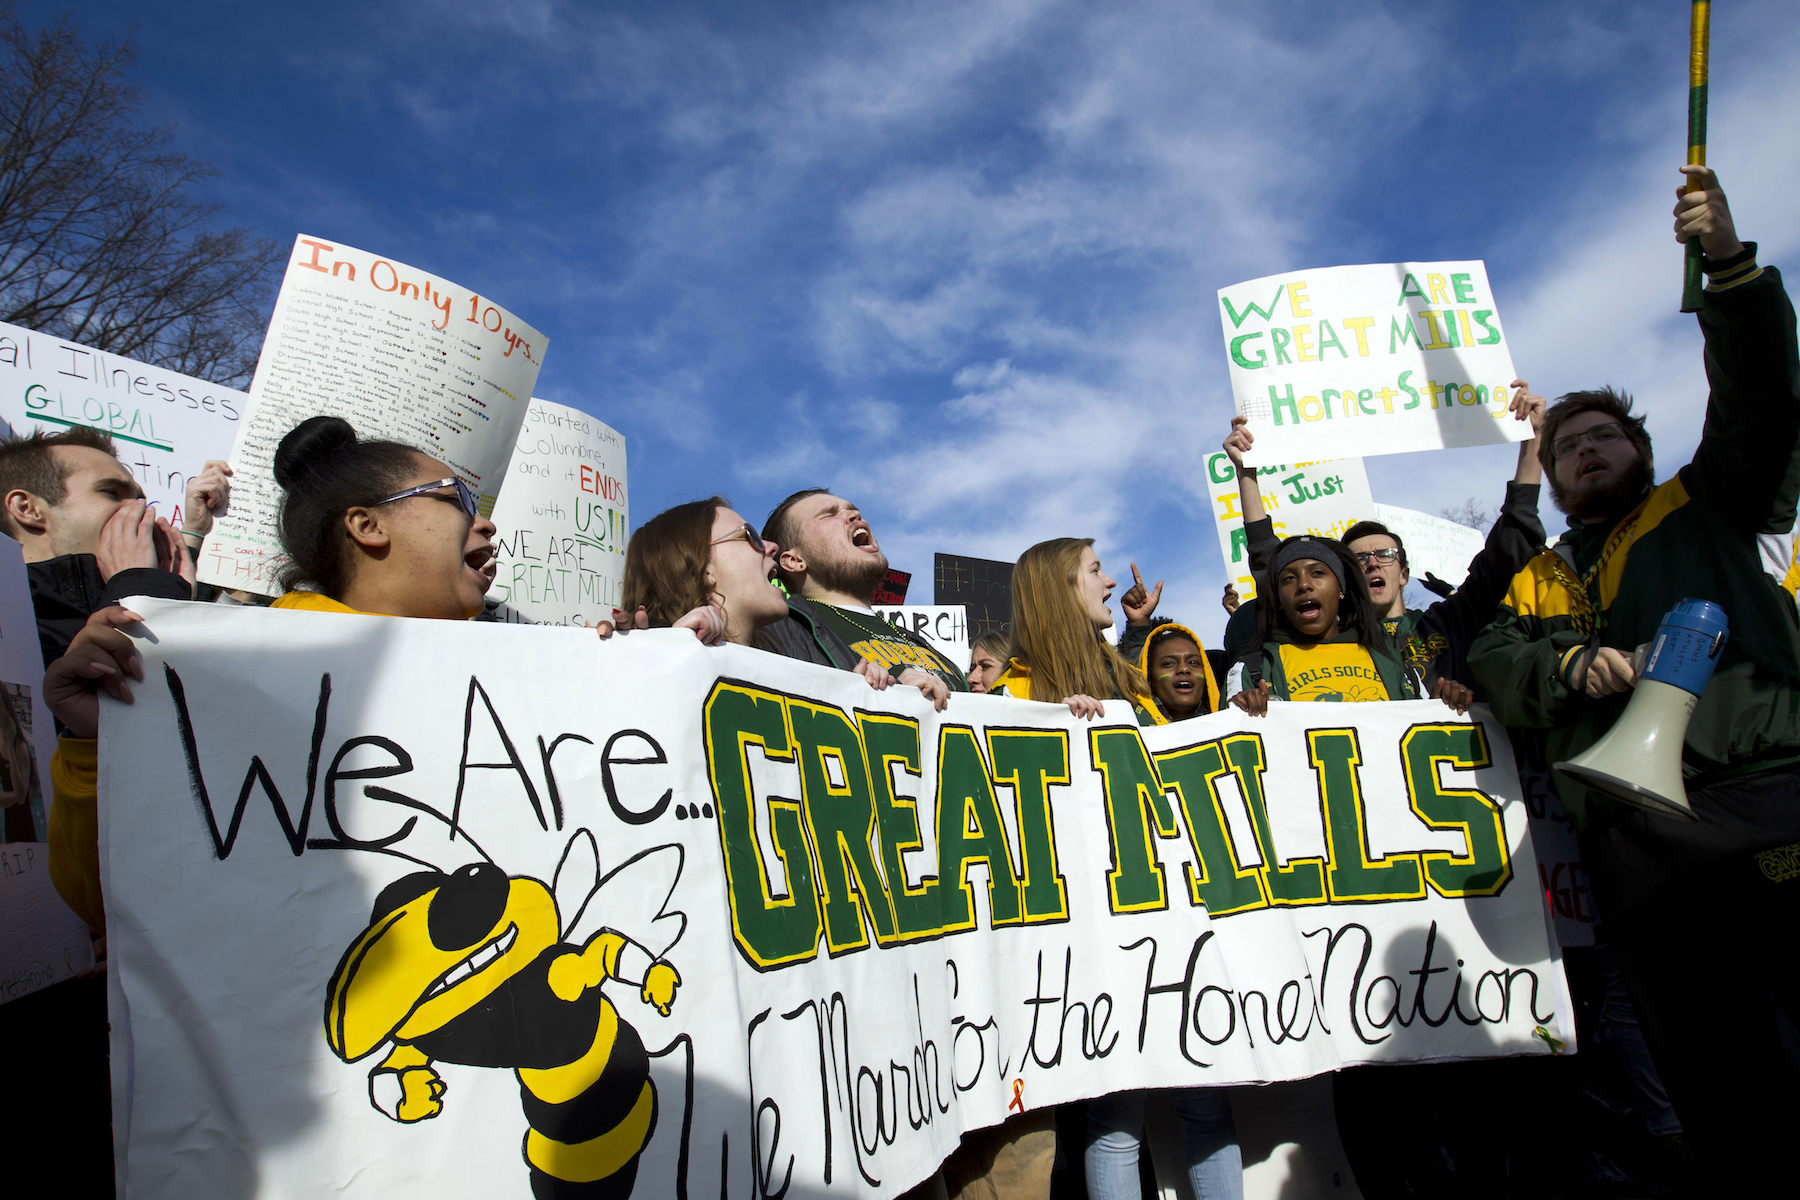 "<div class=""meta image-caption""><div class=""origin-logo origin-image ap""><span>AP</span></div><span class=""caption-text"">Students from Great Mills High School of Maryland, protest during the ""€œMarch for Our Lives"" rally in support of gun control in Washington. (AP Photo/Jose Luis Magana)</span></div>"